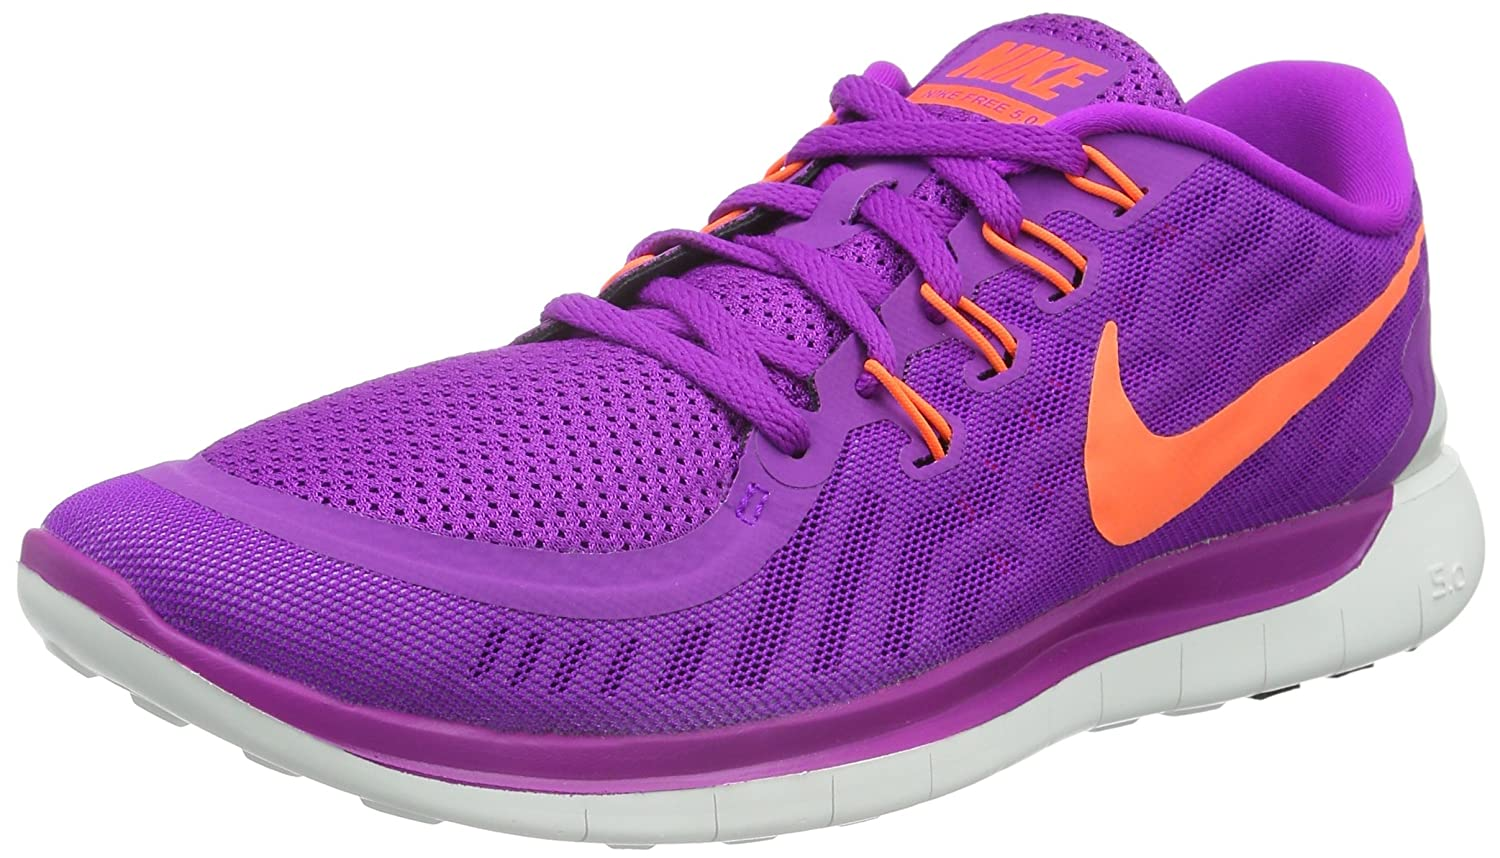 quality design 01154 dd4f0 Amazon.com  Nike Womens Free Running Shoe  Road Running